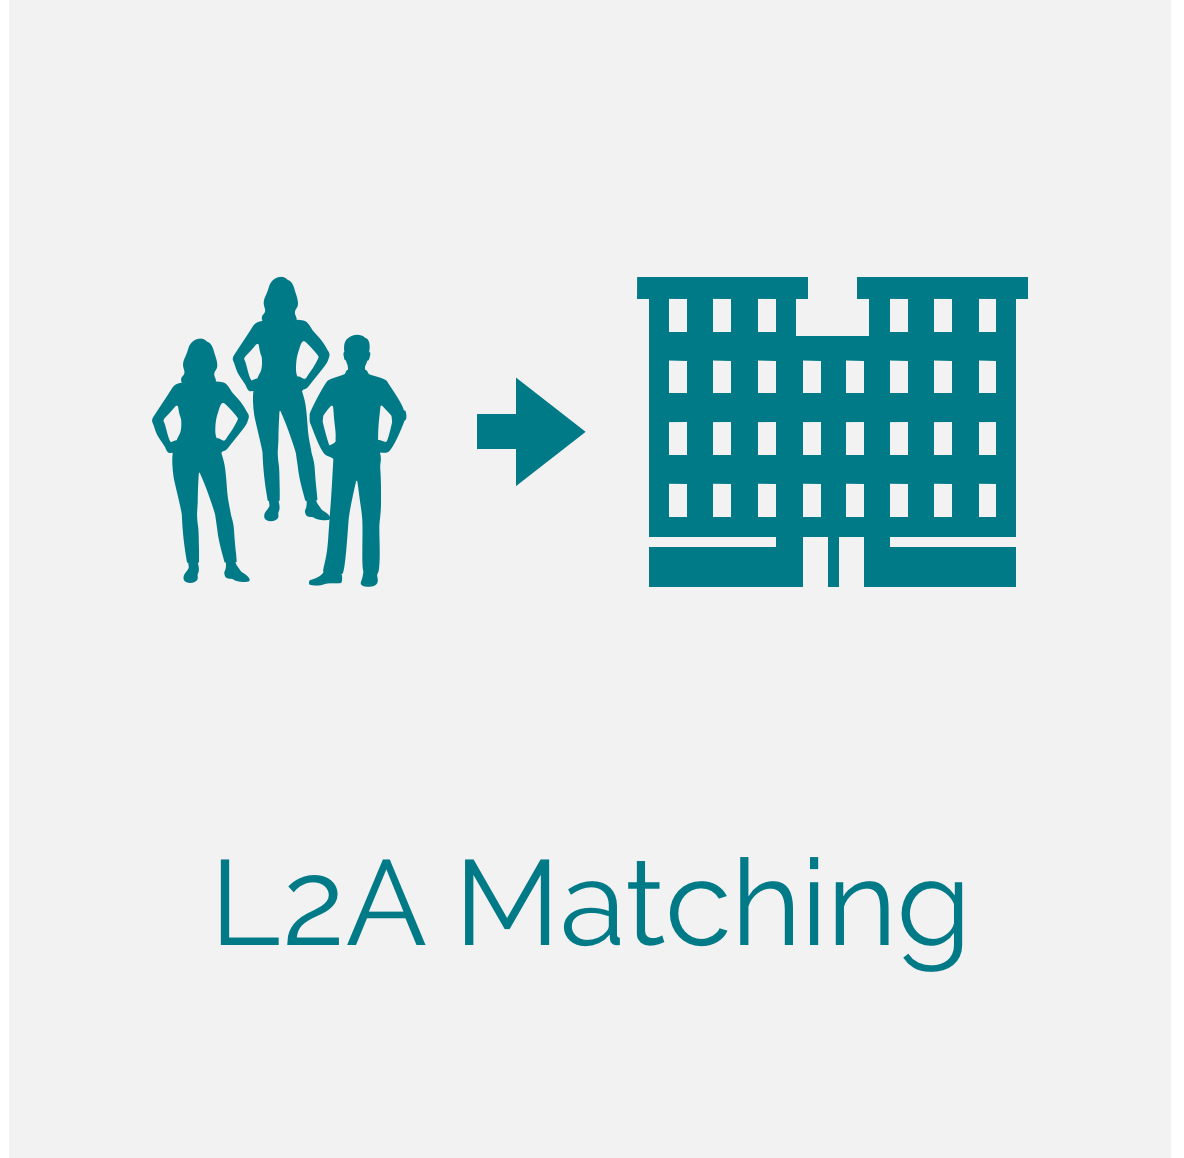 Lead to Account Matching